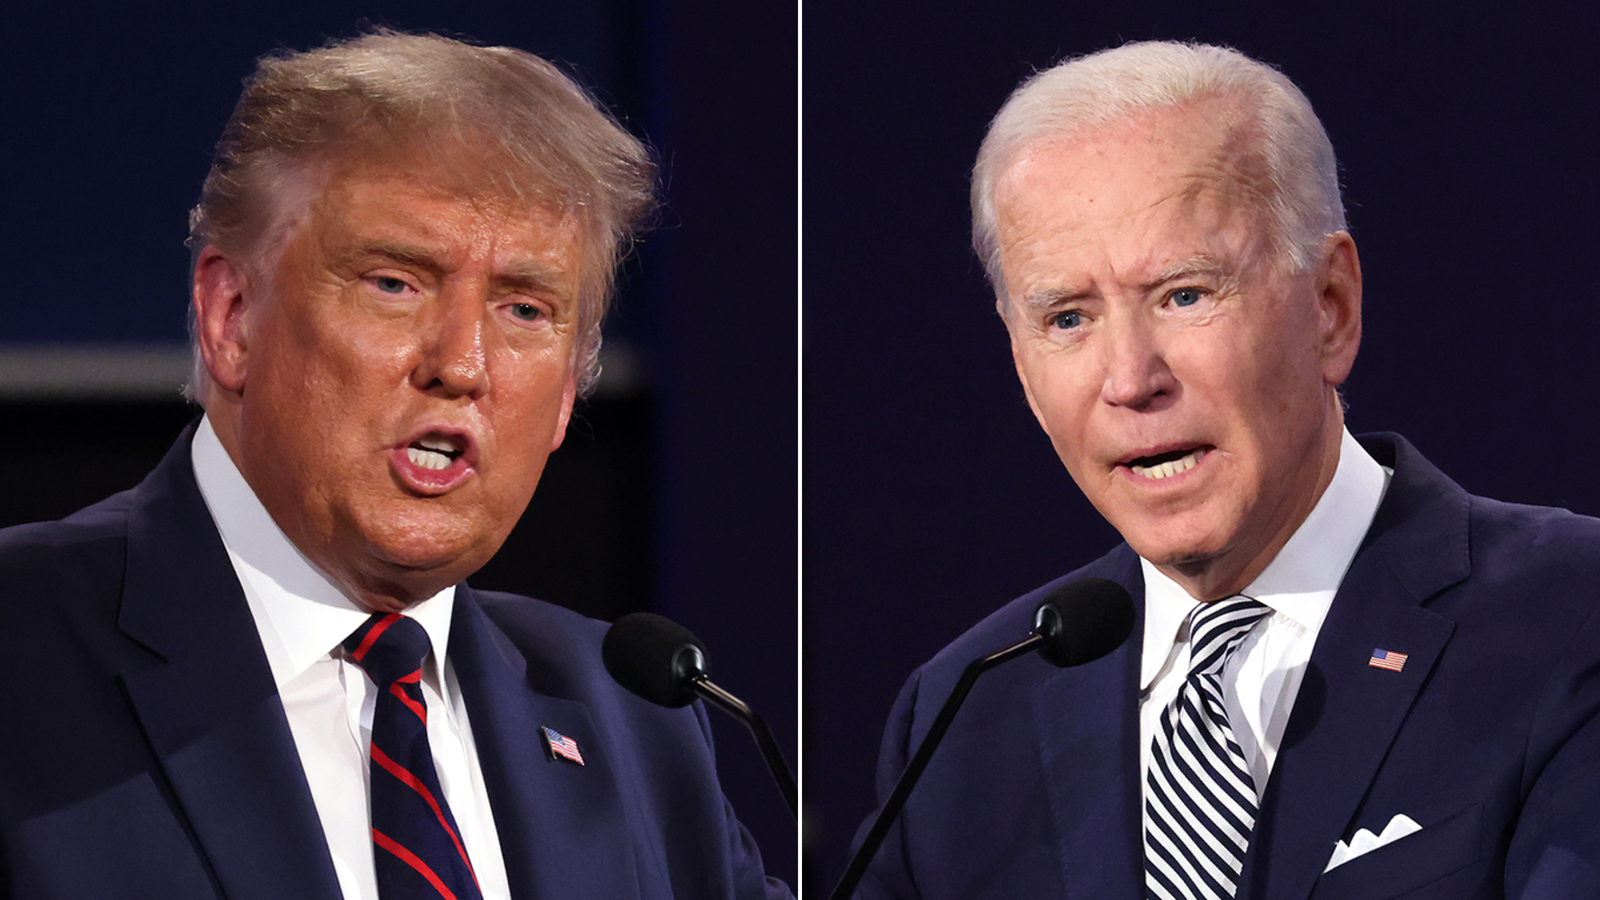 These are the big words associated with Trump and Biden as the 2020 campaign closes